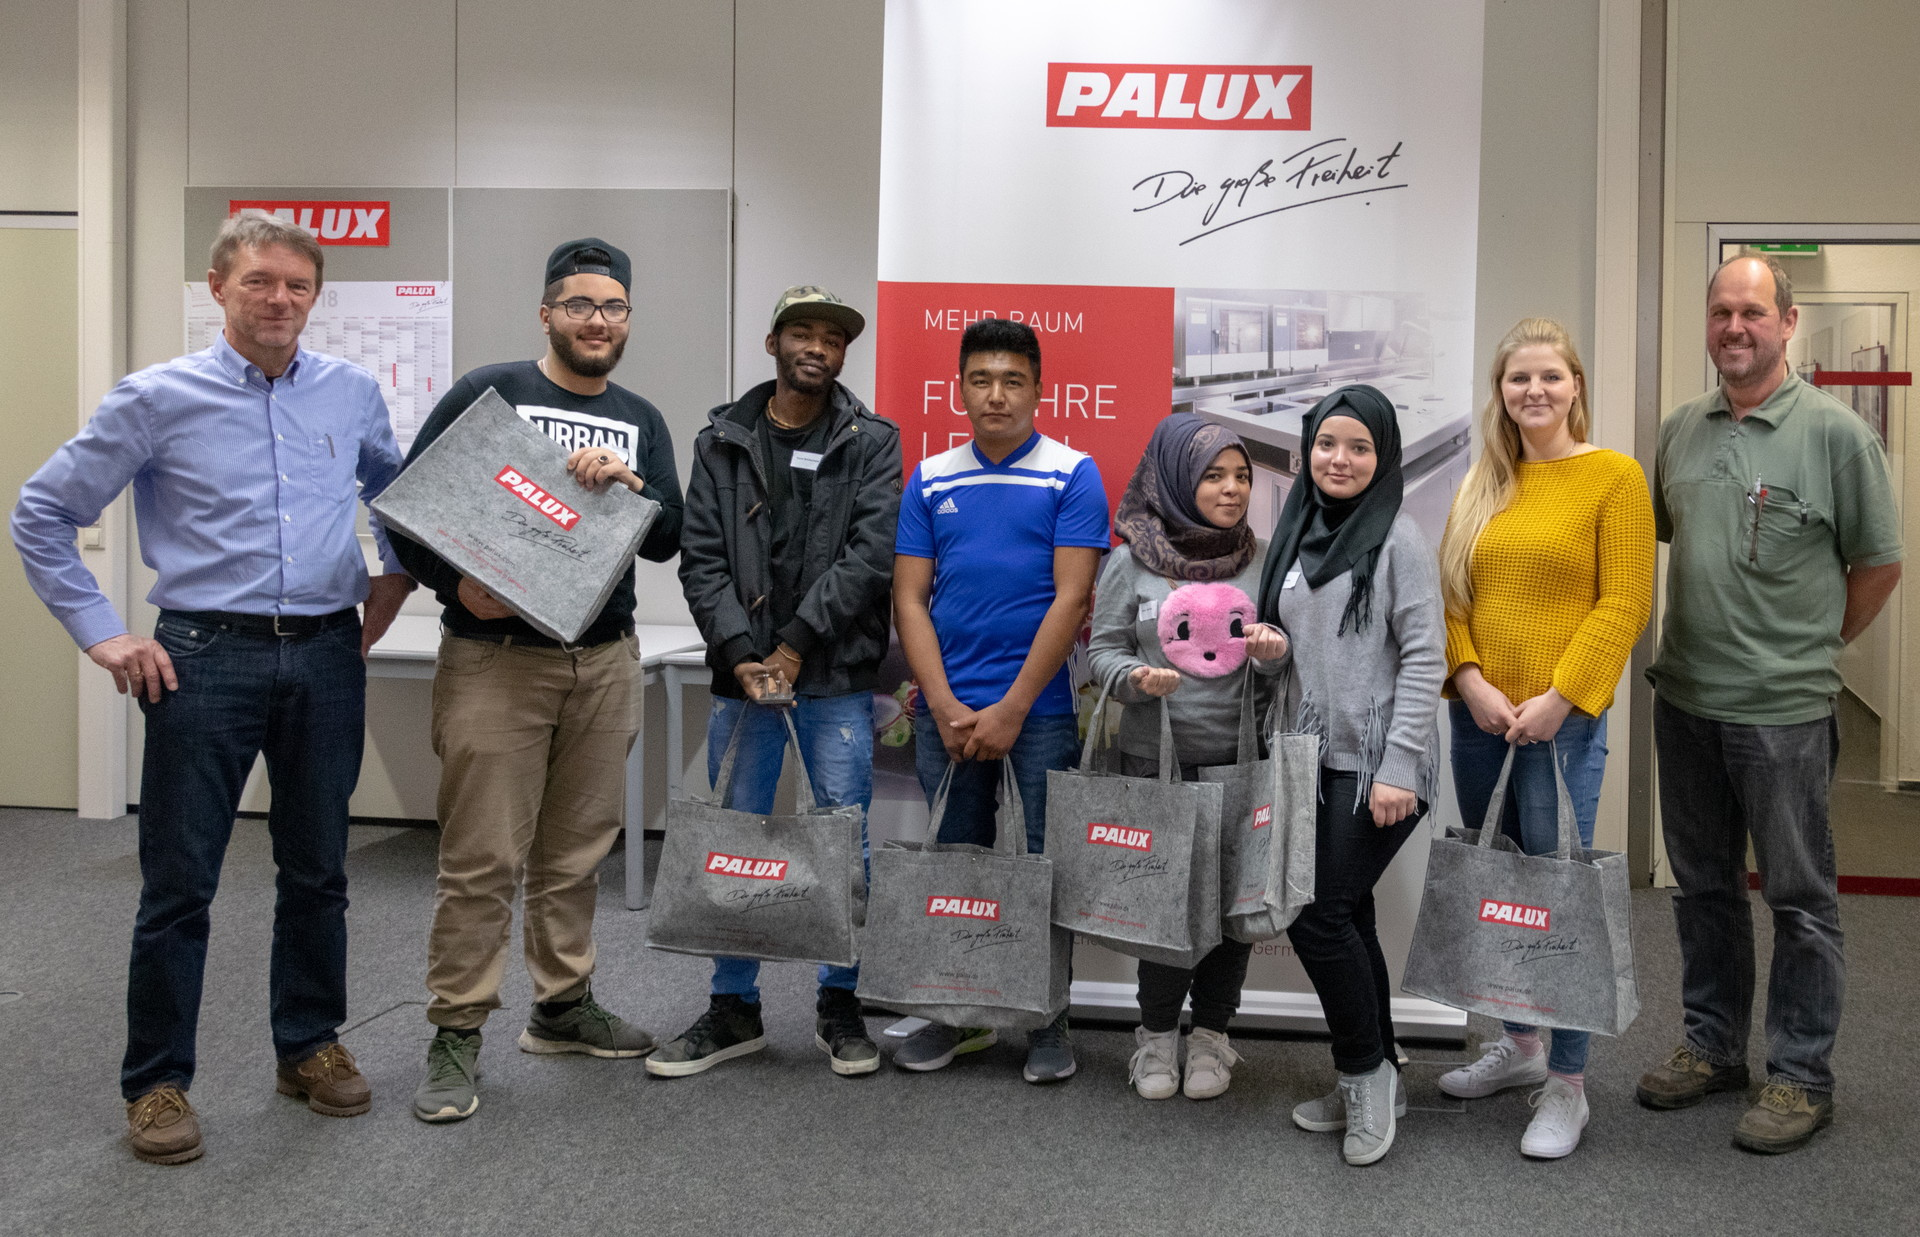 Integration is important to PALUX AG